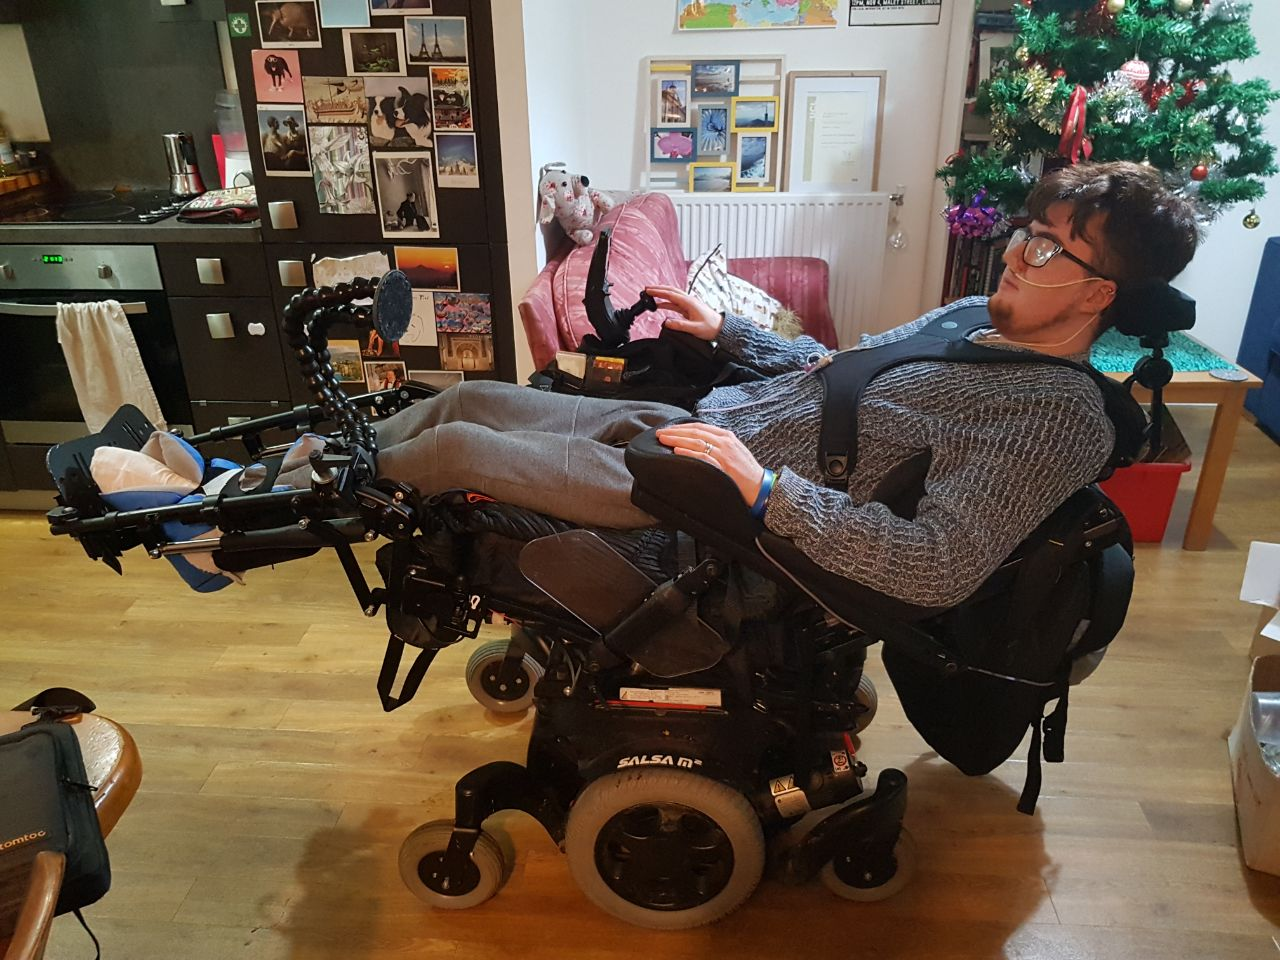 A young adult with dark red hair is reclined in an electric wheelchair. They are wearing a blue jumper